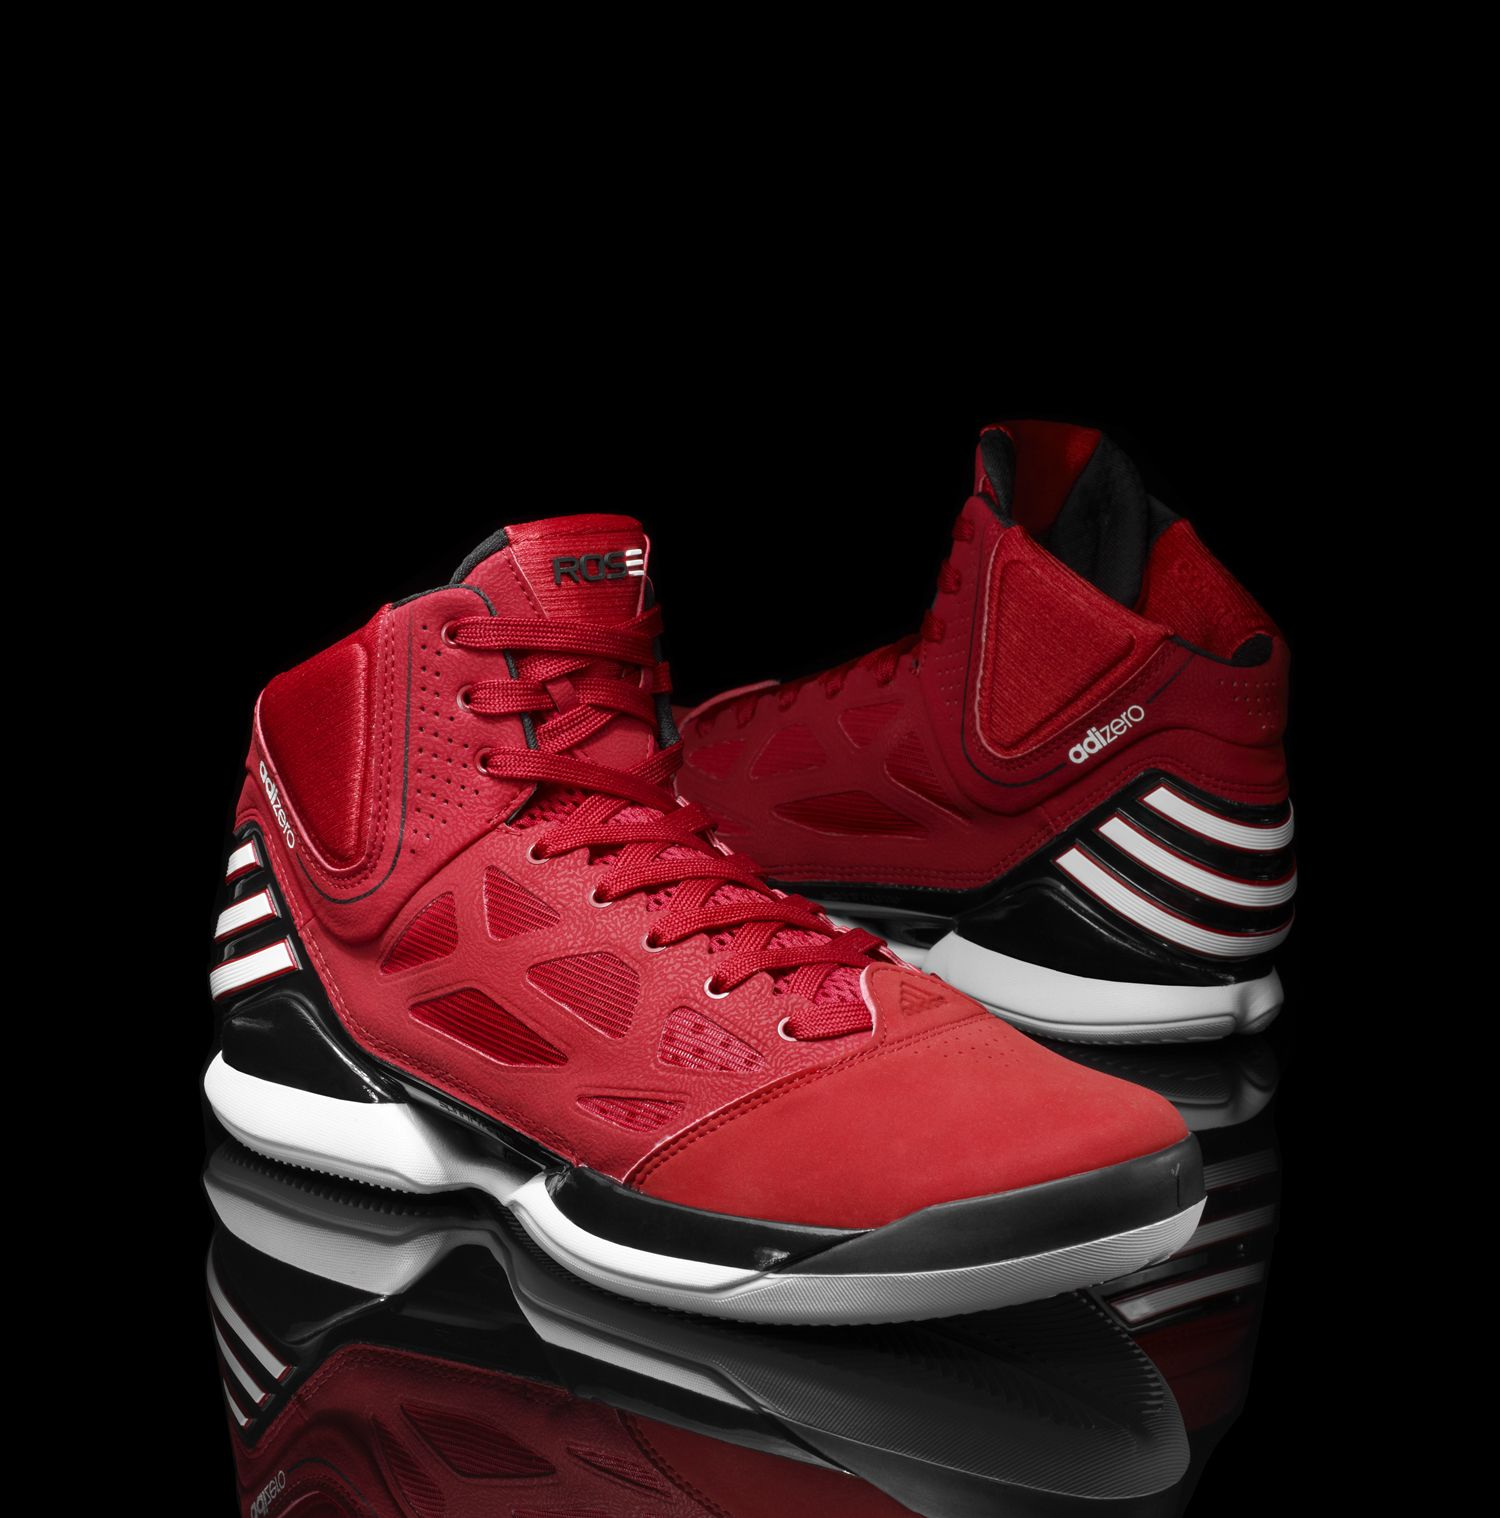 Rose Adidas Shoes